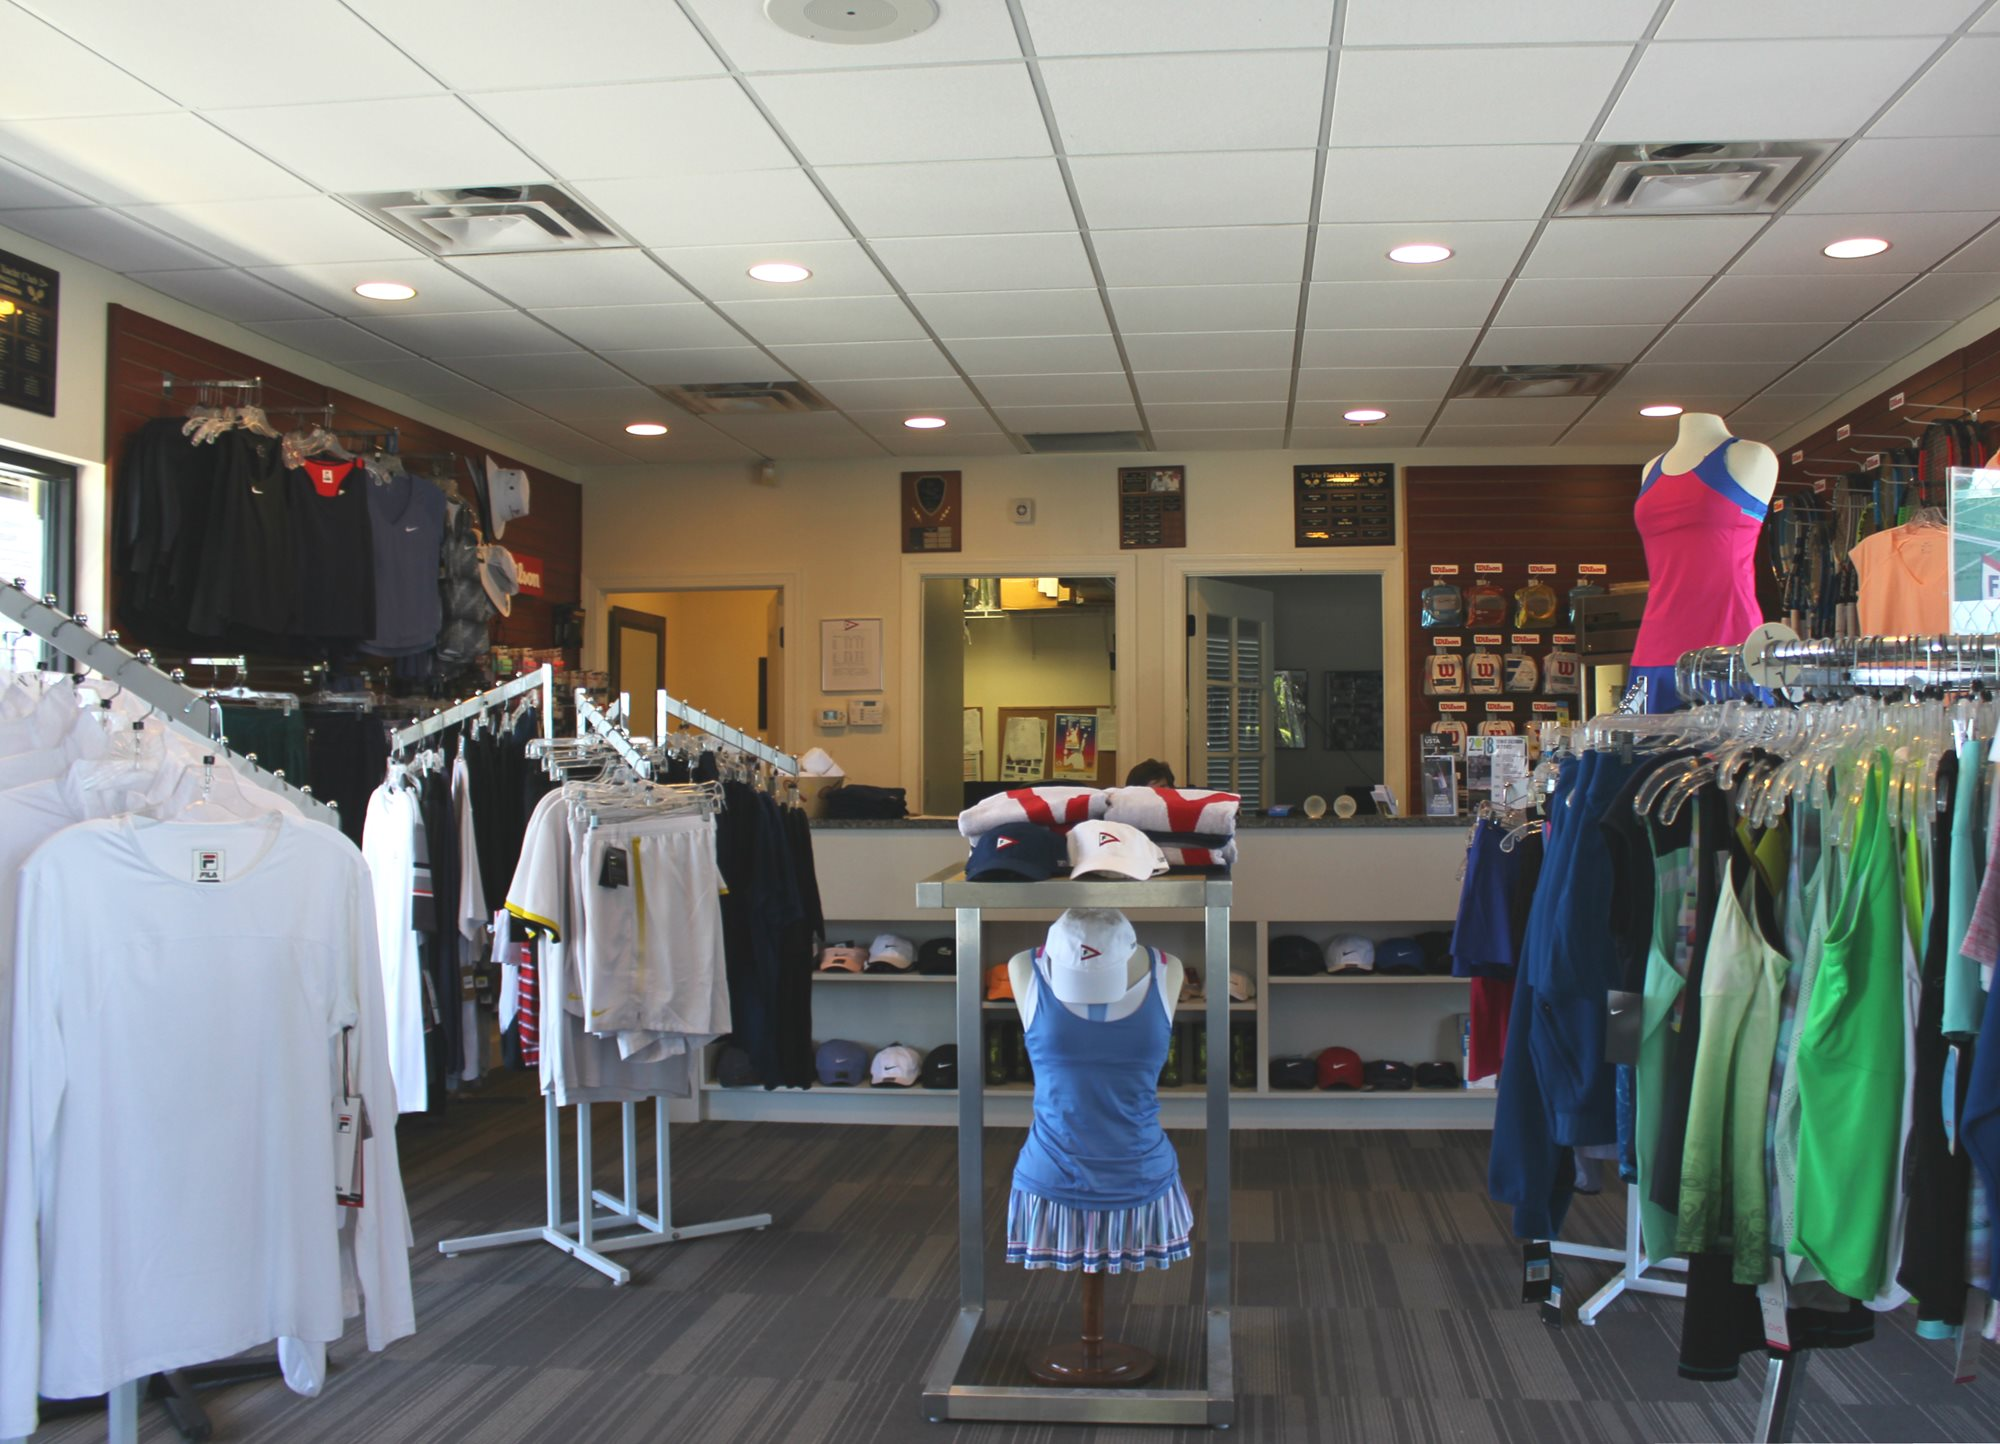 Inside of Pro Shop